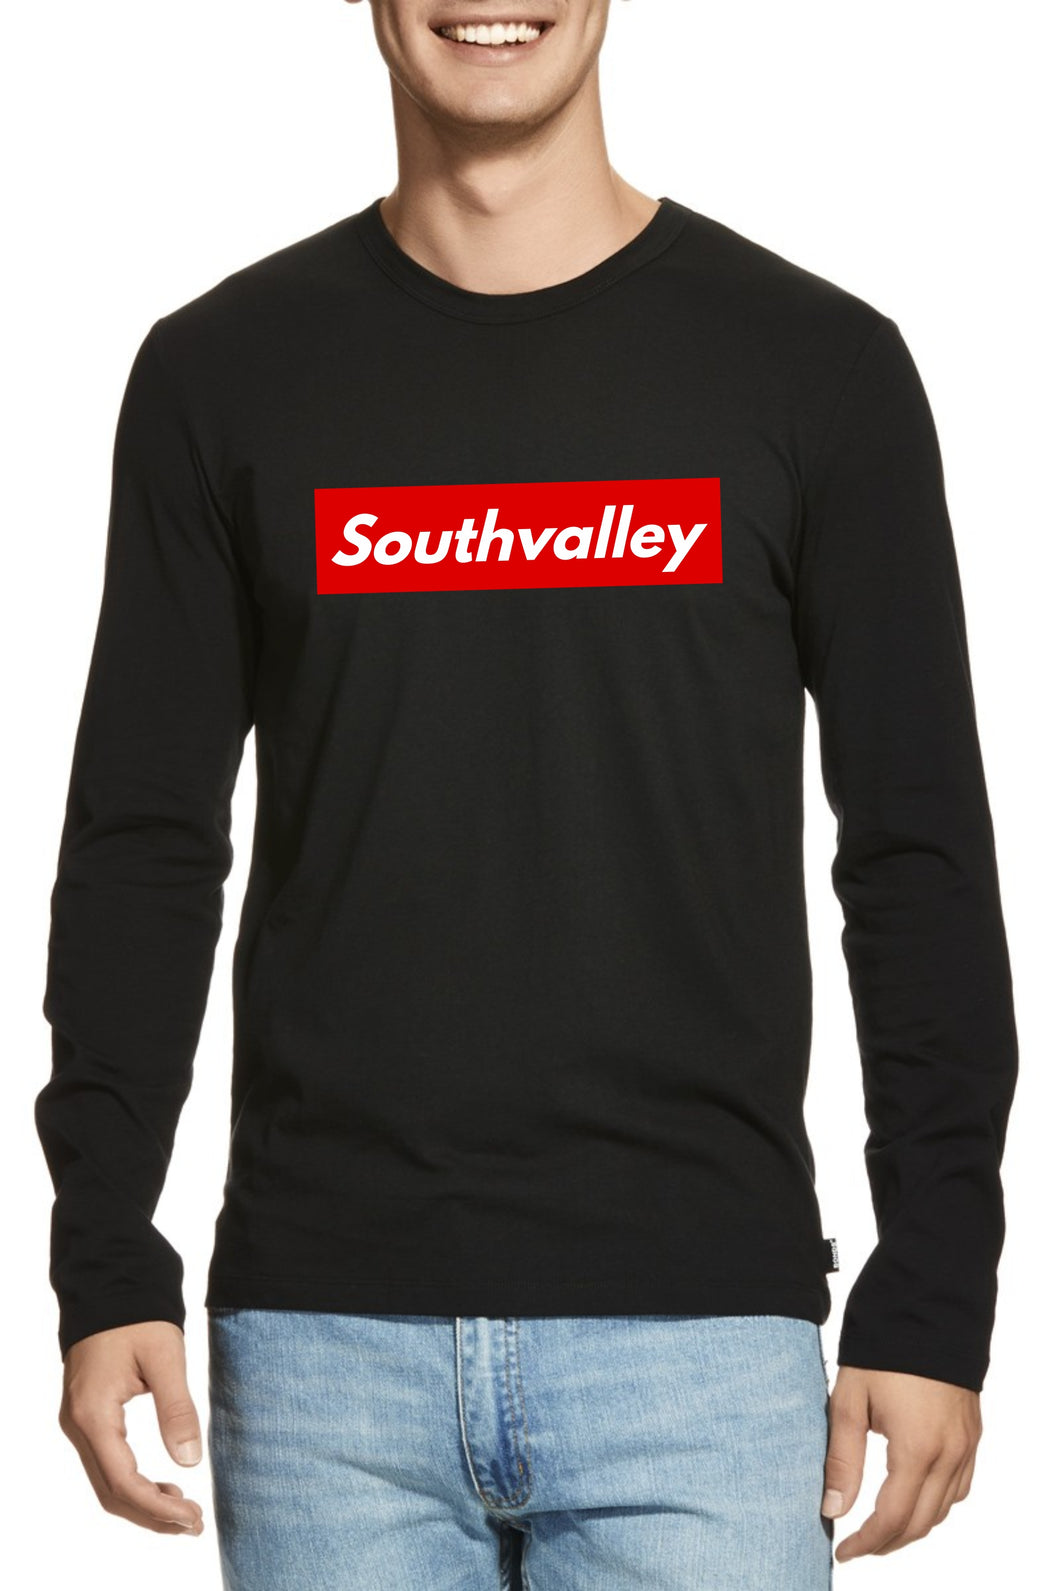 Southvalley